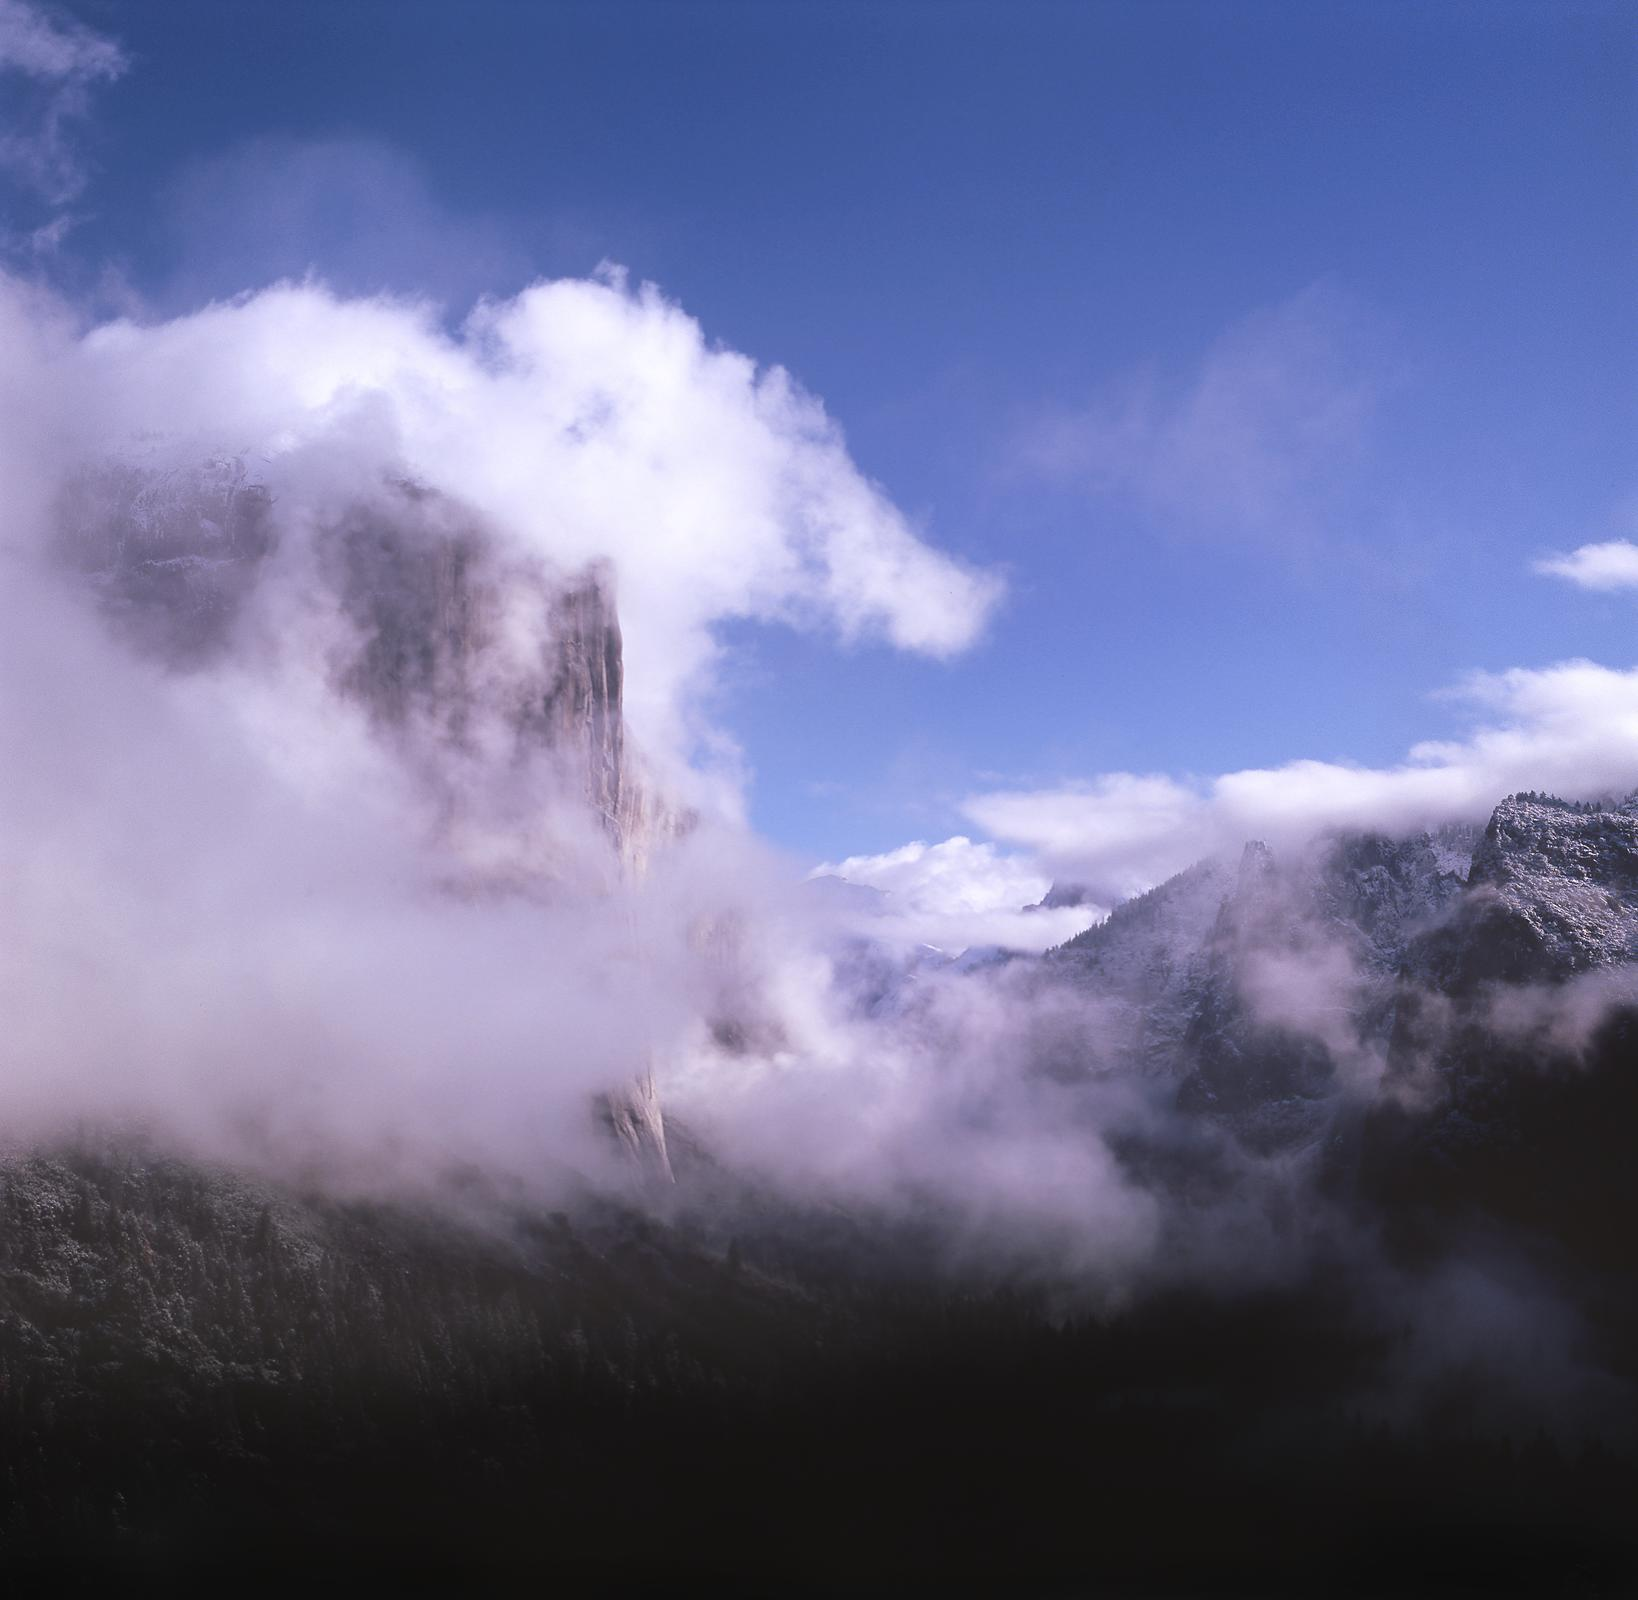 004-California_CA141004_Yosemite__El_Capitan_02_Preview